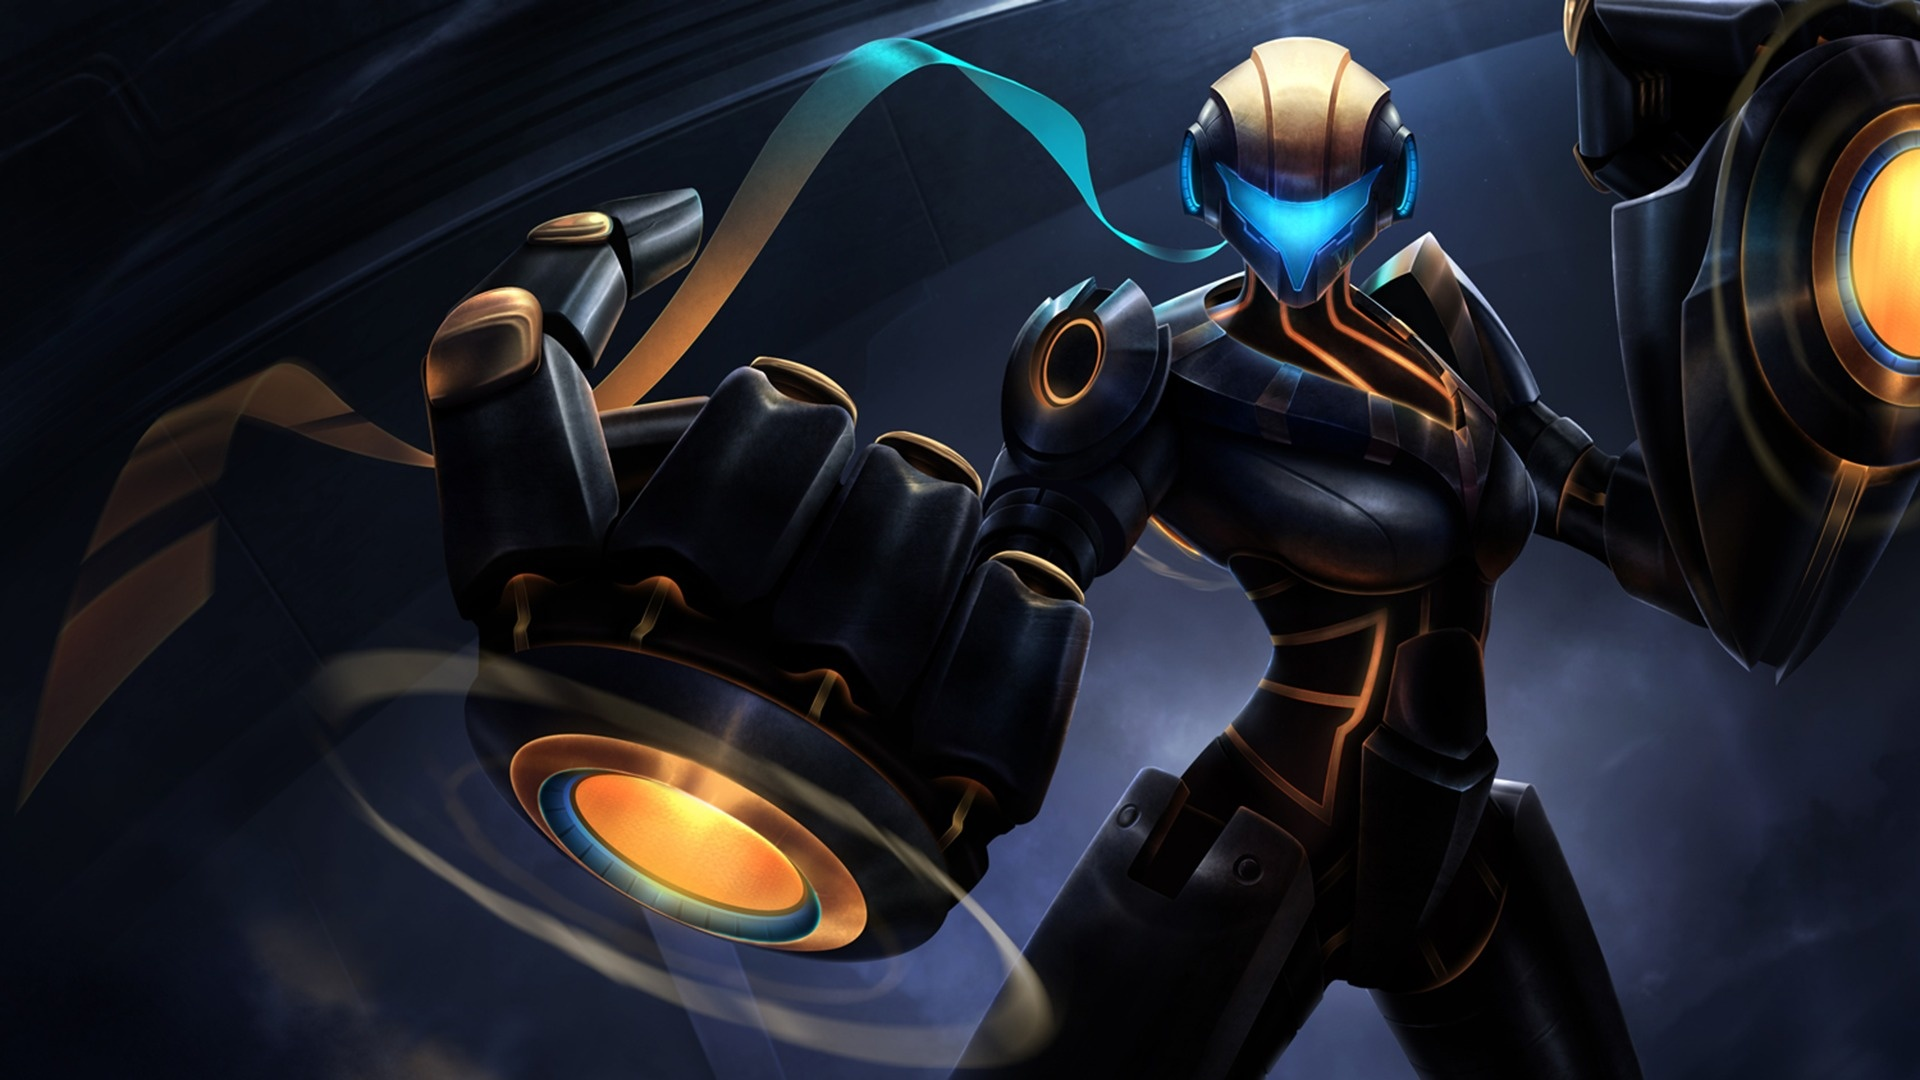 Full Metal Vi Skin League Of Legends Wallpapers 1920x1080 336549